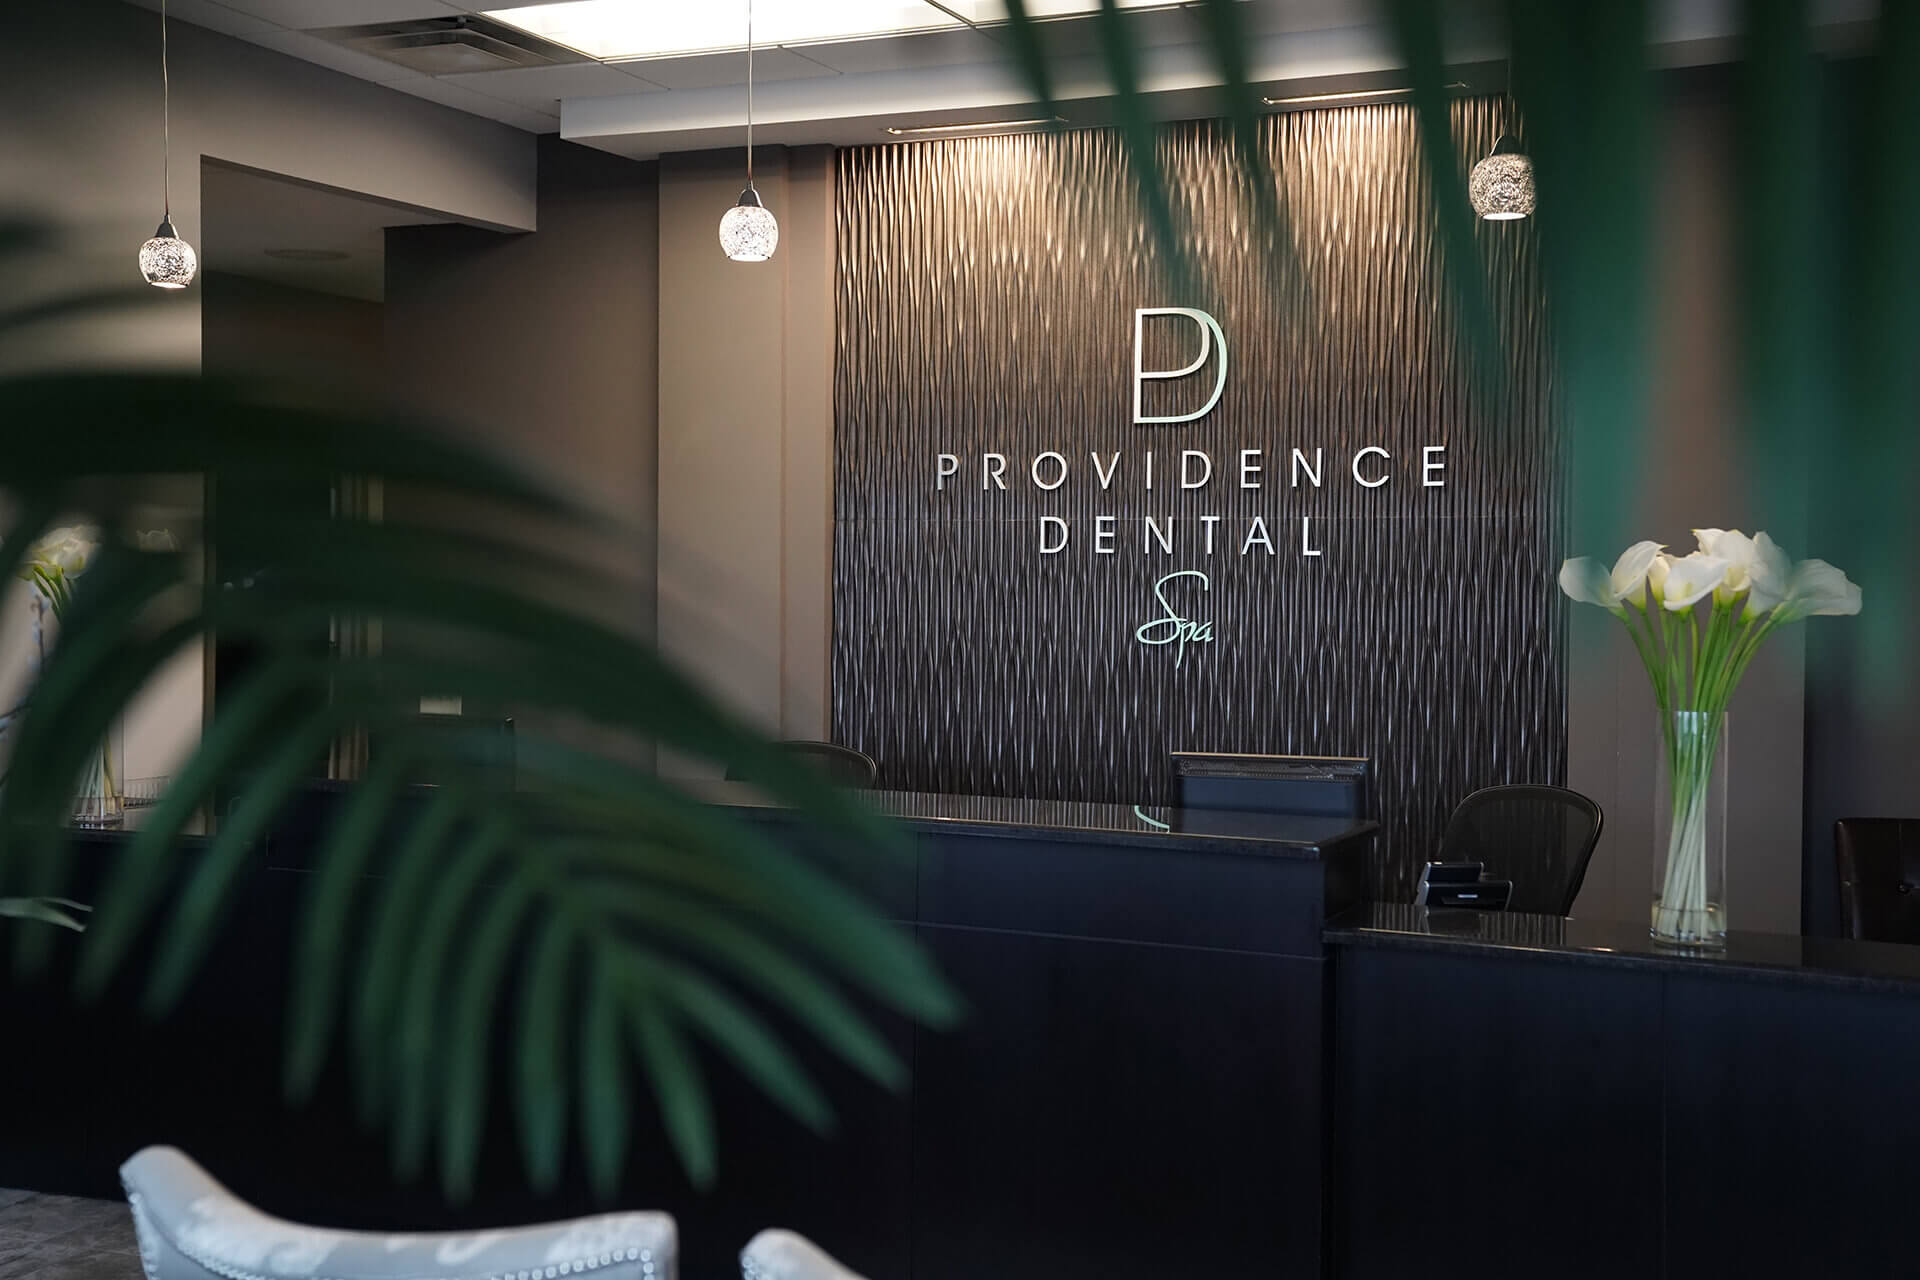 Providence Dental Spa